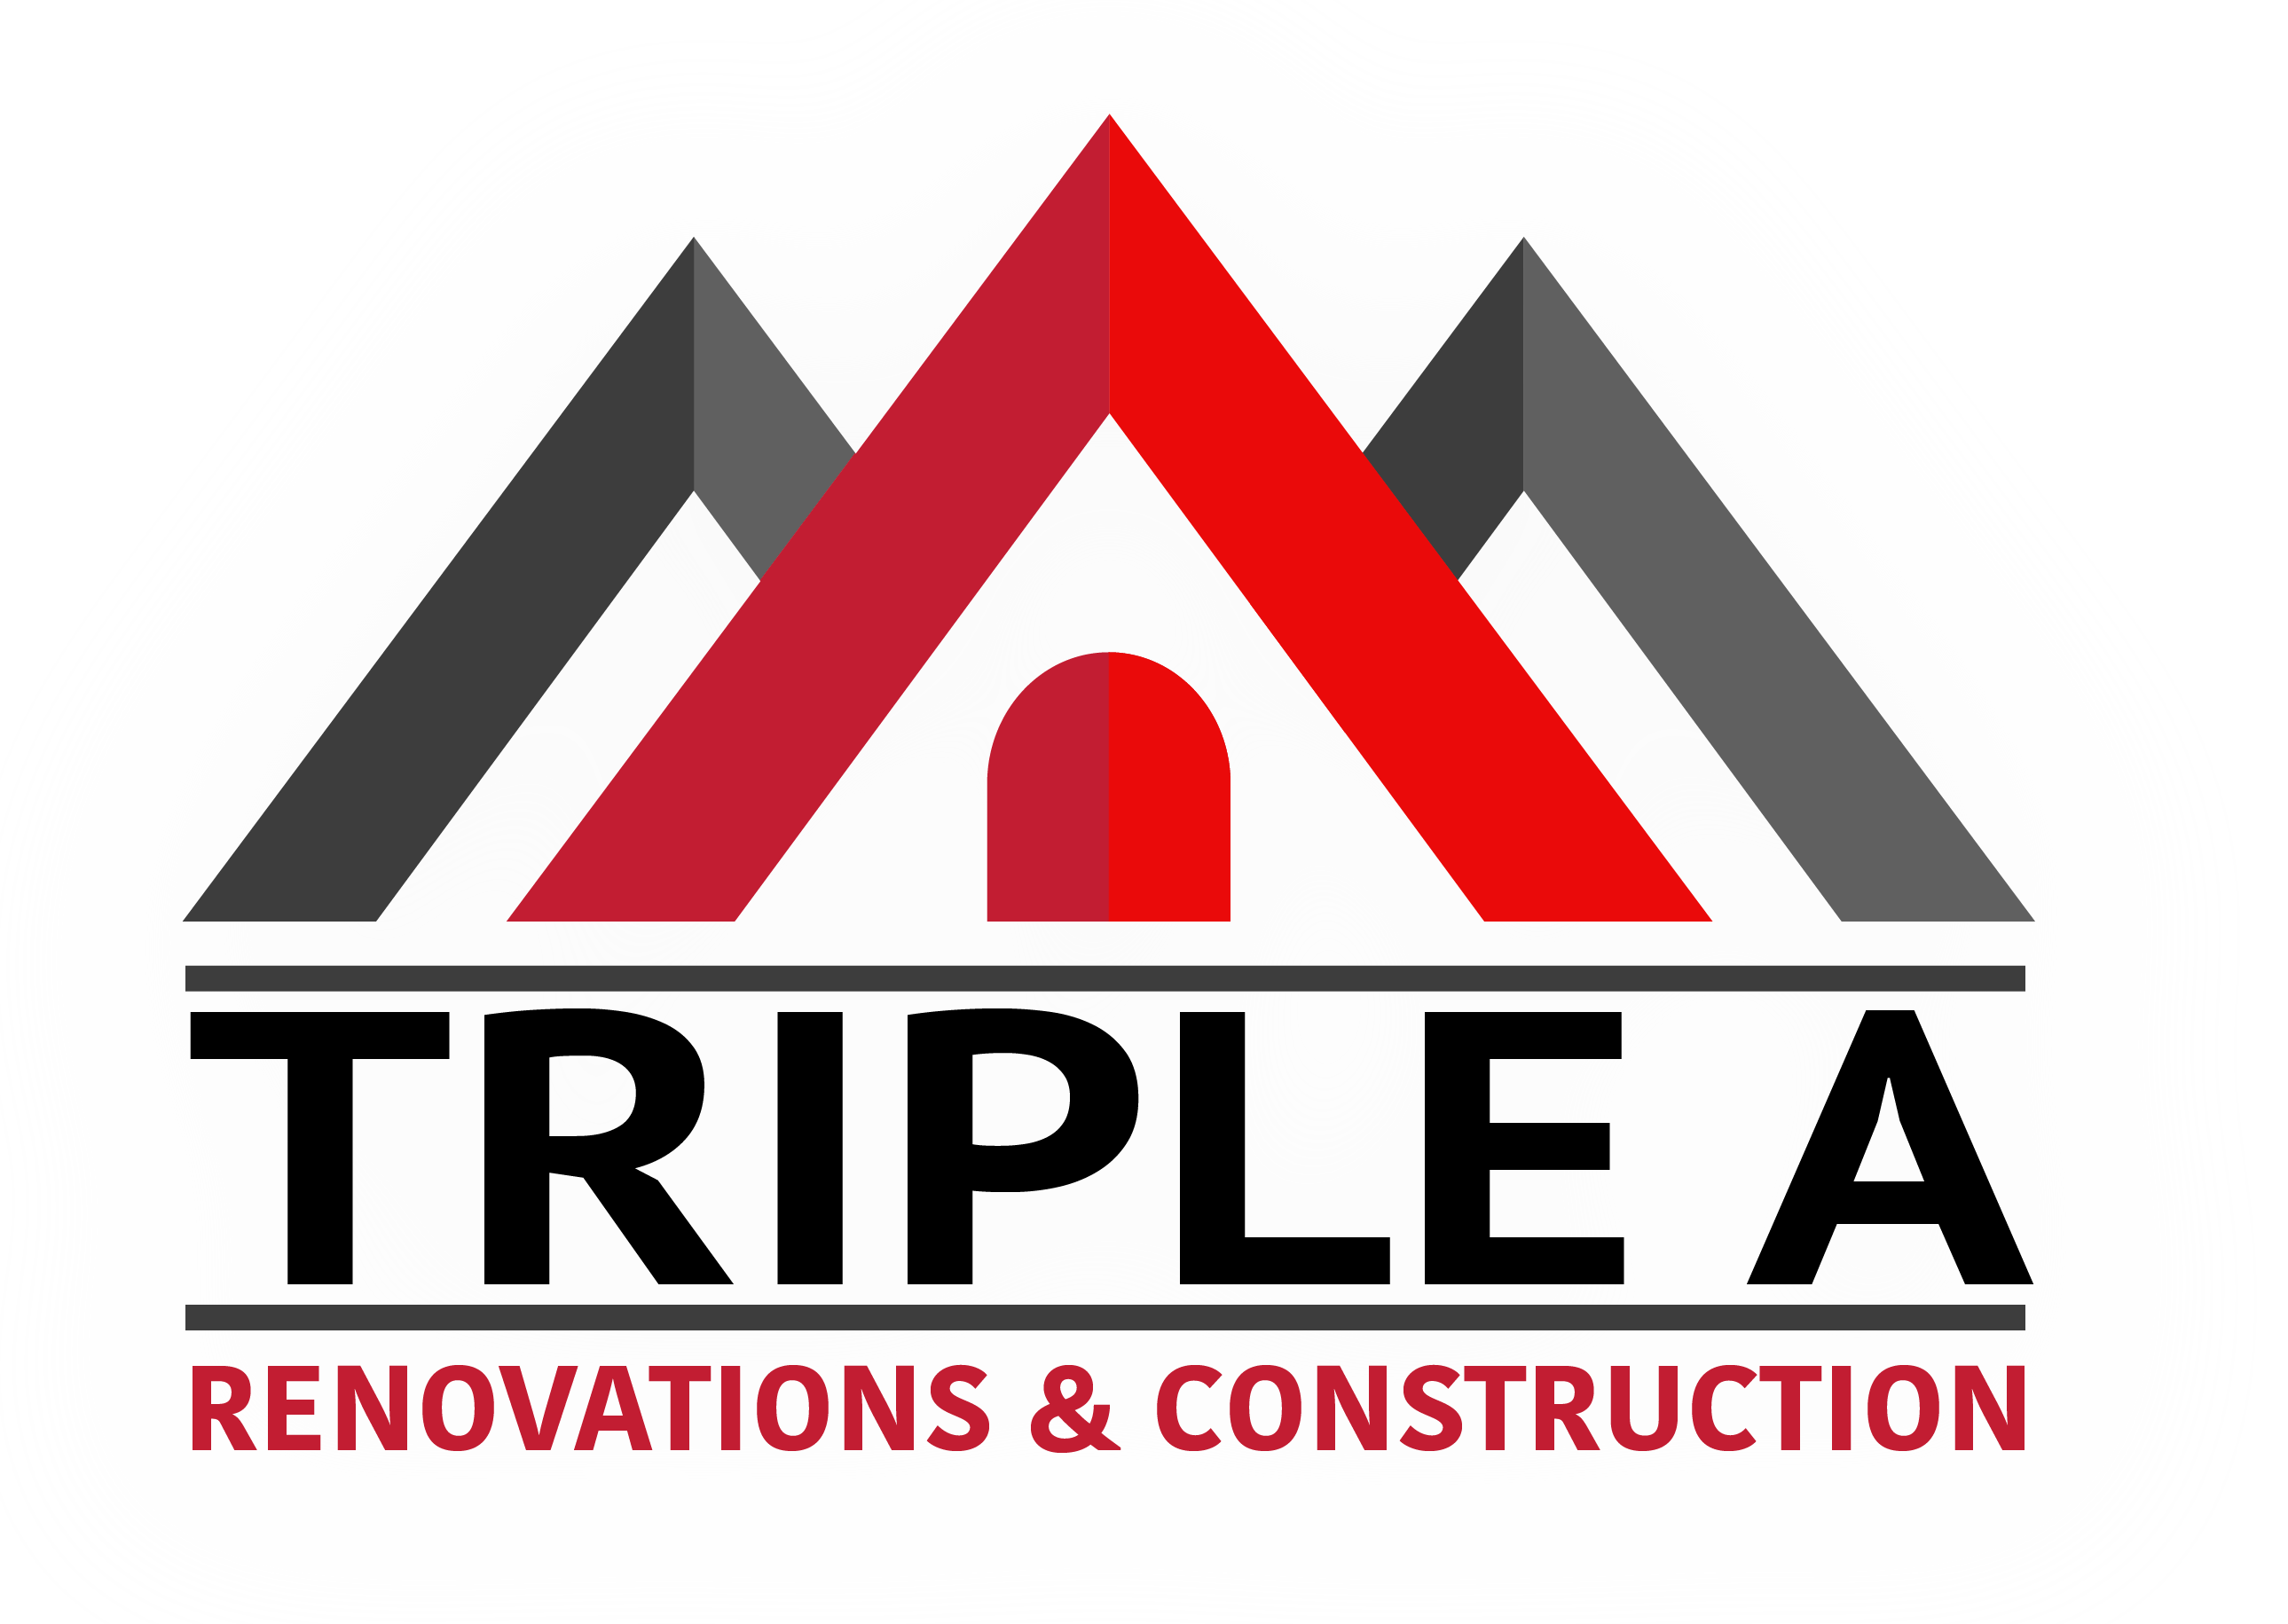 Triple A Renovations & Construction – Licensed and insured general contracting company